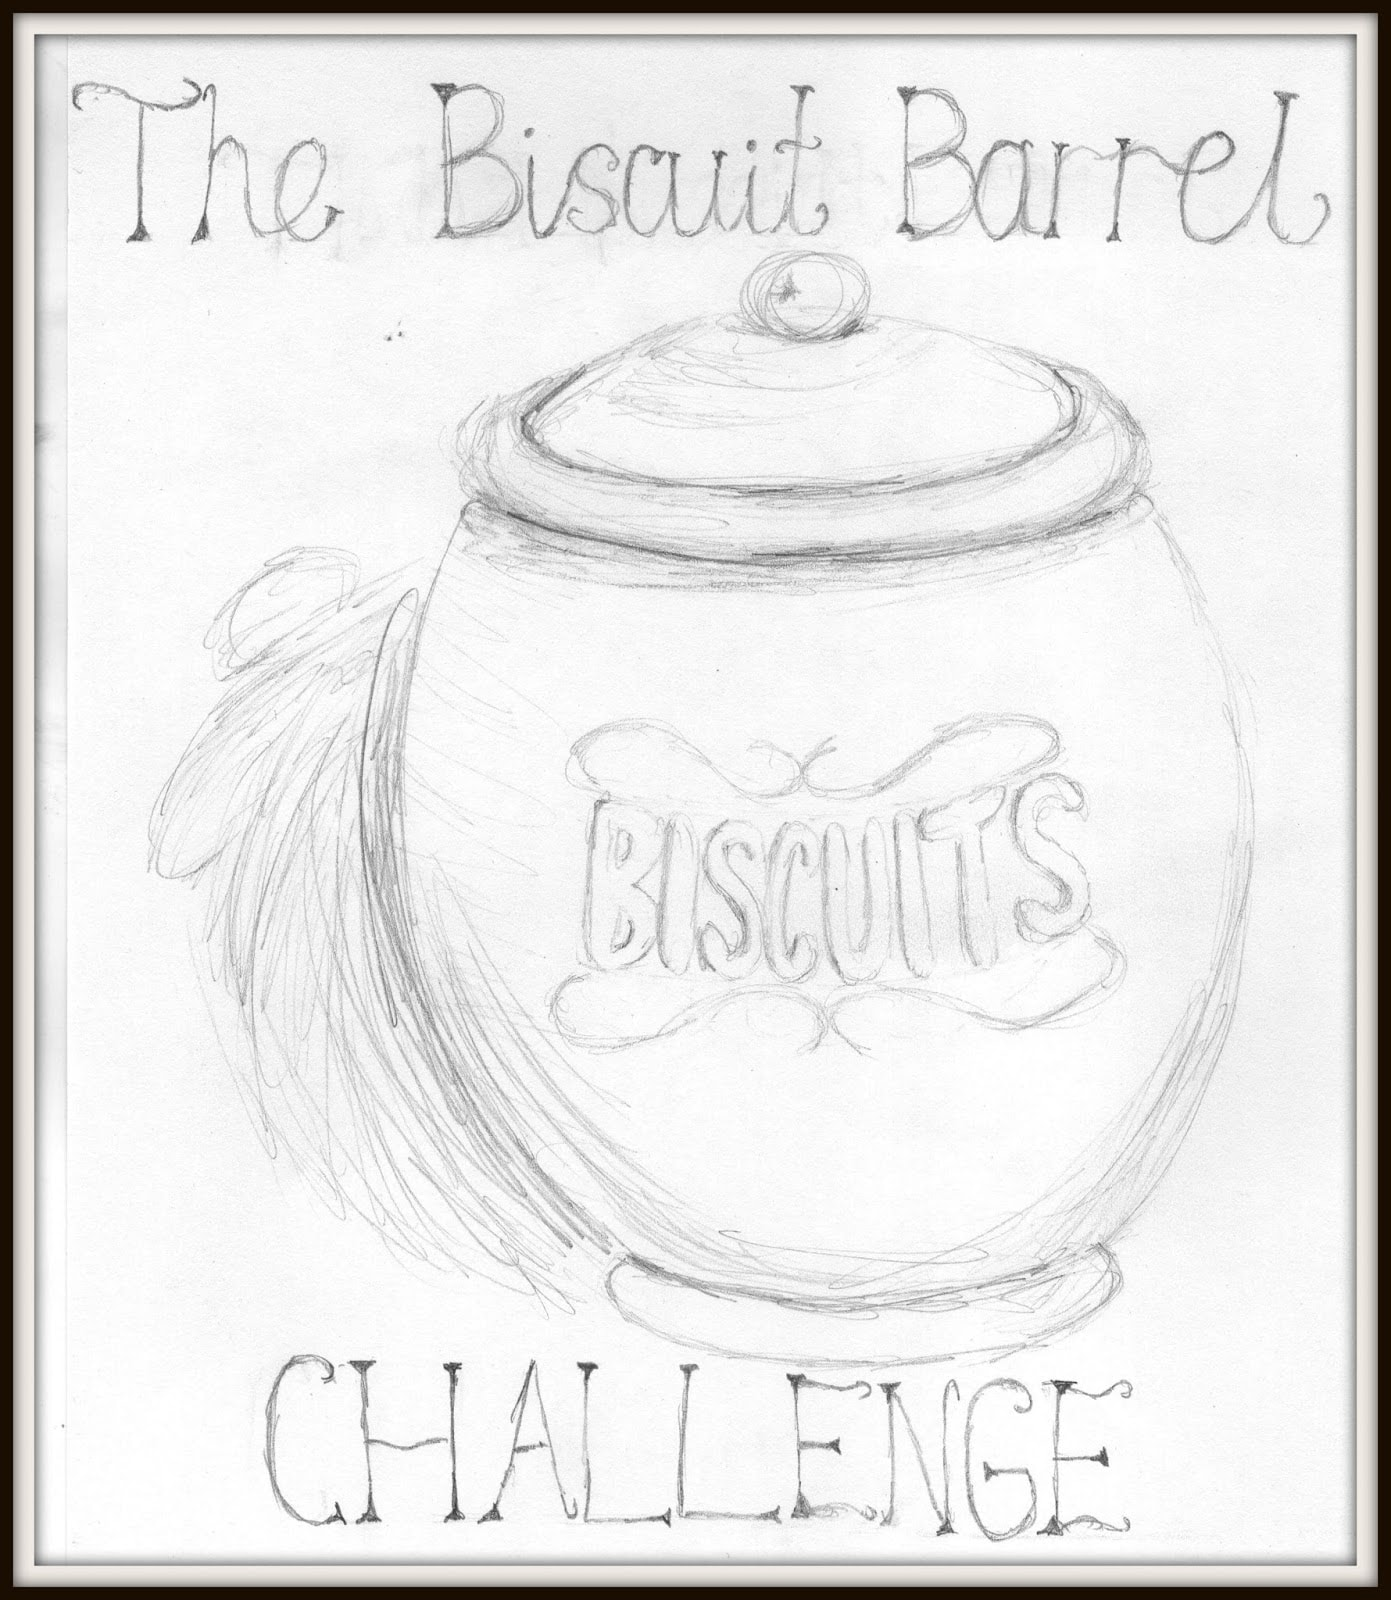 The Biscuit Barrel Challenge